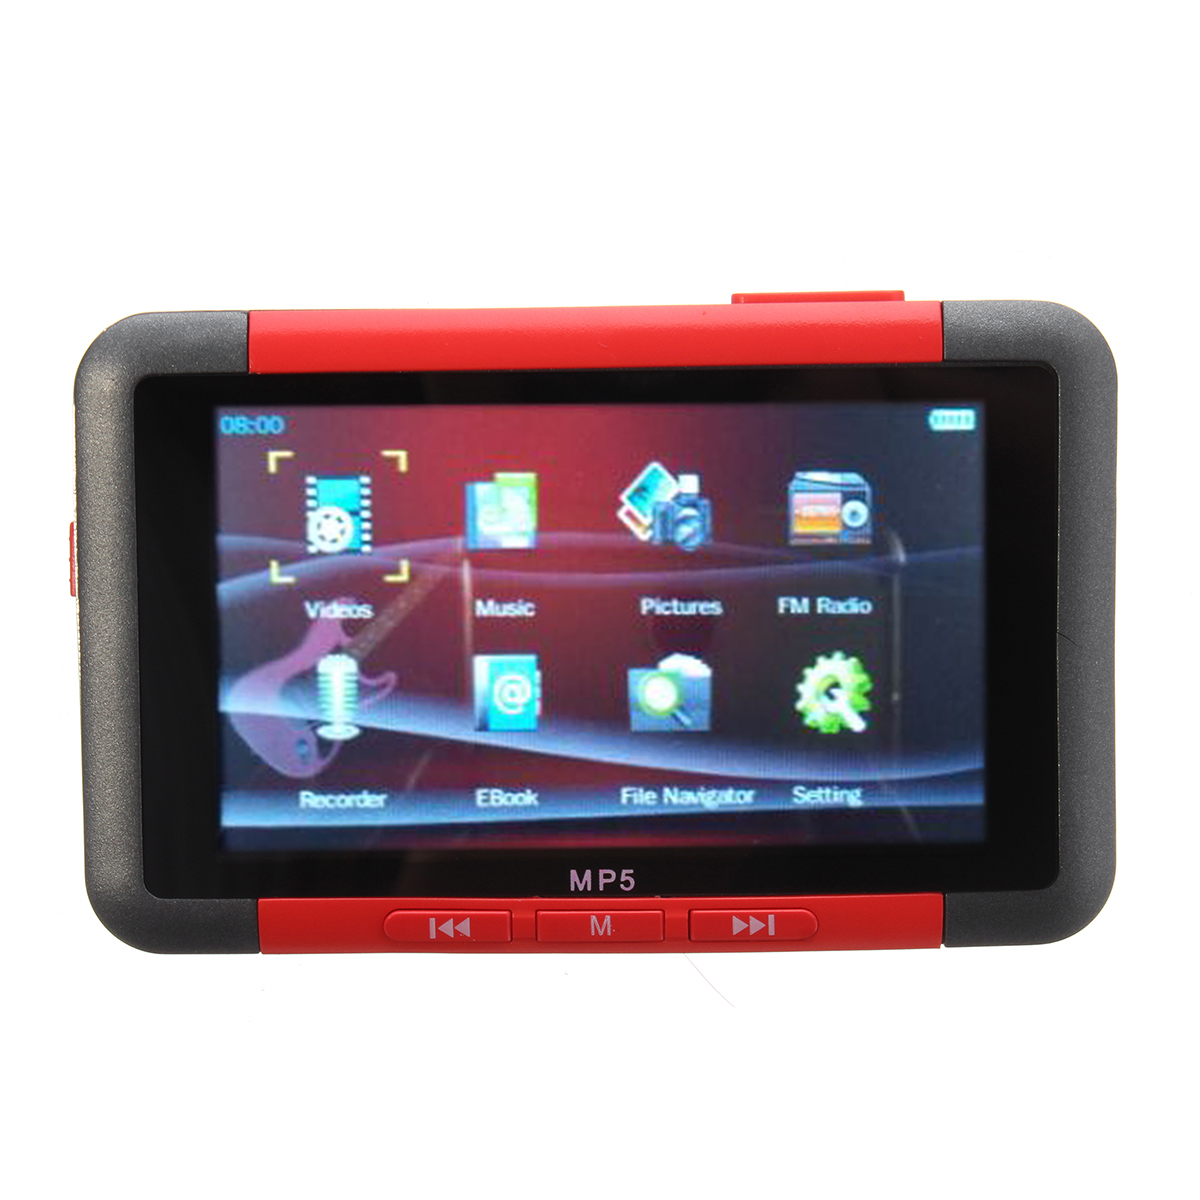 3 Inch Slim LCD Video Music Media Player 16GB FM Radio Recorder MP5